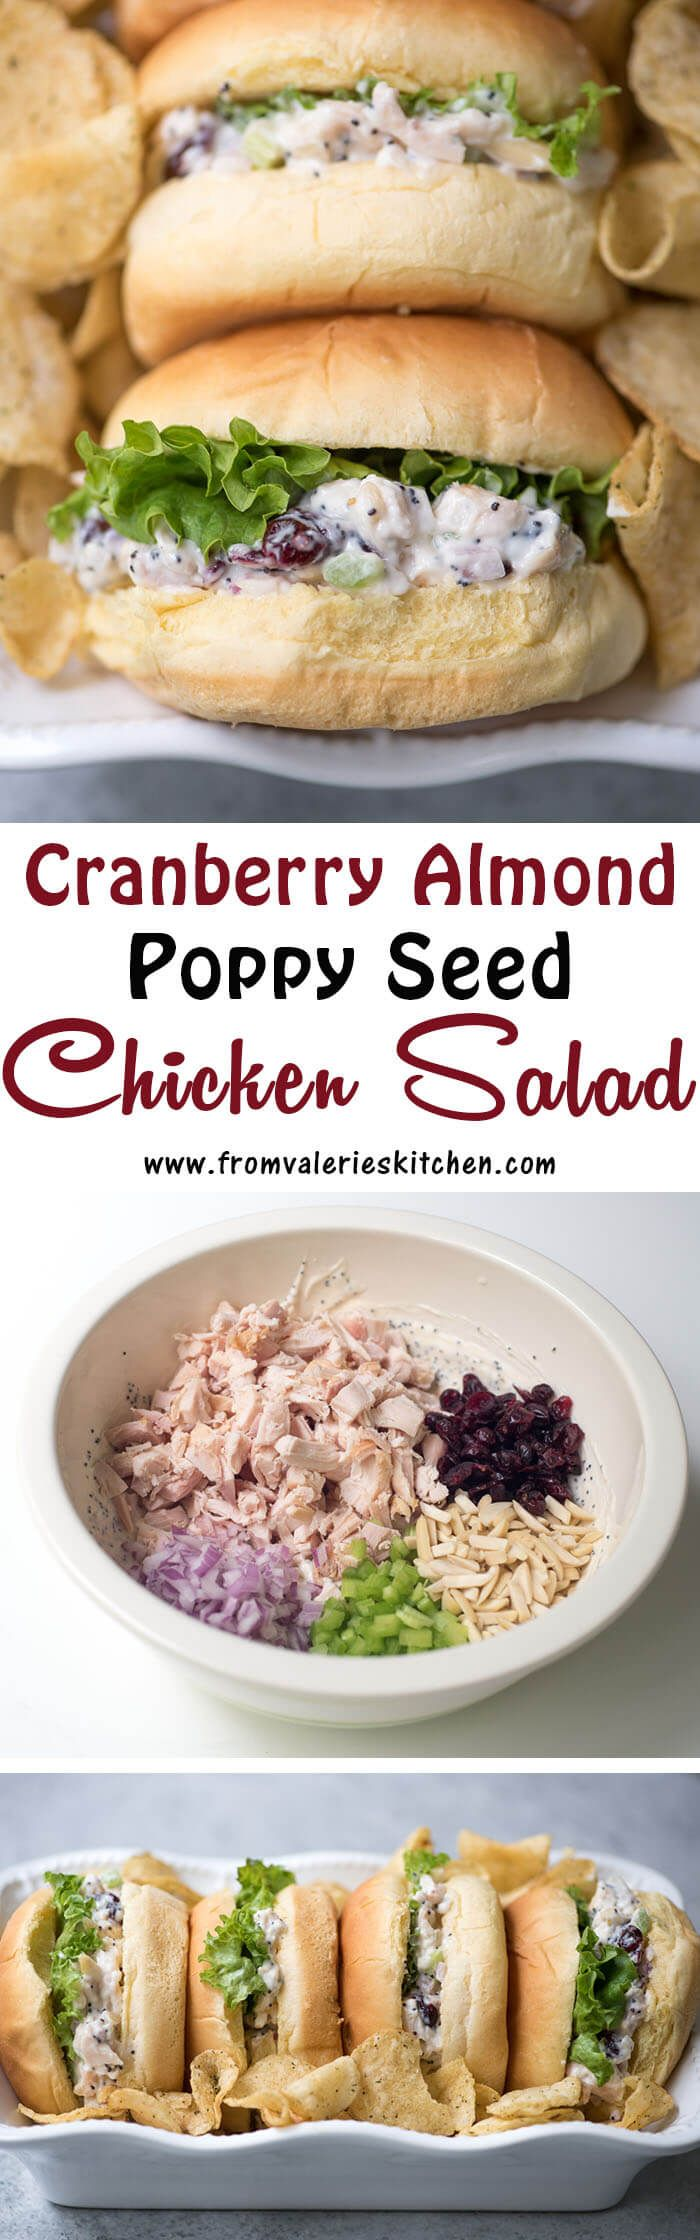 A tangy, lightly sweet poppy seed dressing graces this pretty Cranberry Almond Poppy Seed Chicken Salad. Layer it on rolls for a delicious, light meal! ~ https://www.fromvalerieskitchen.com